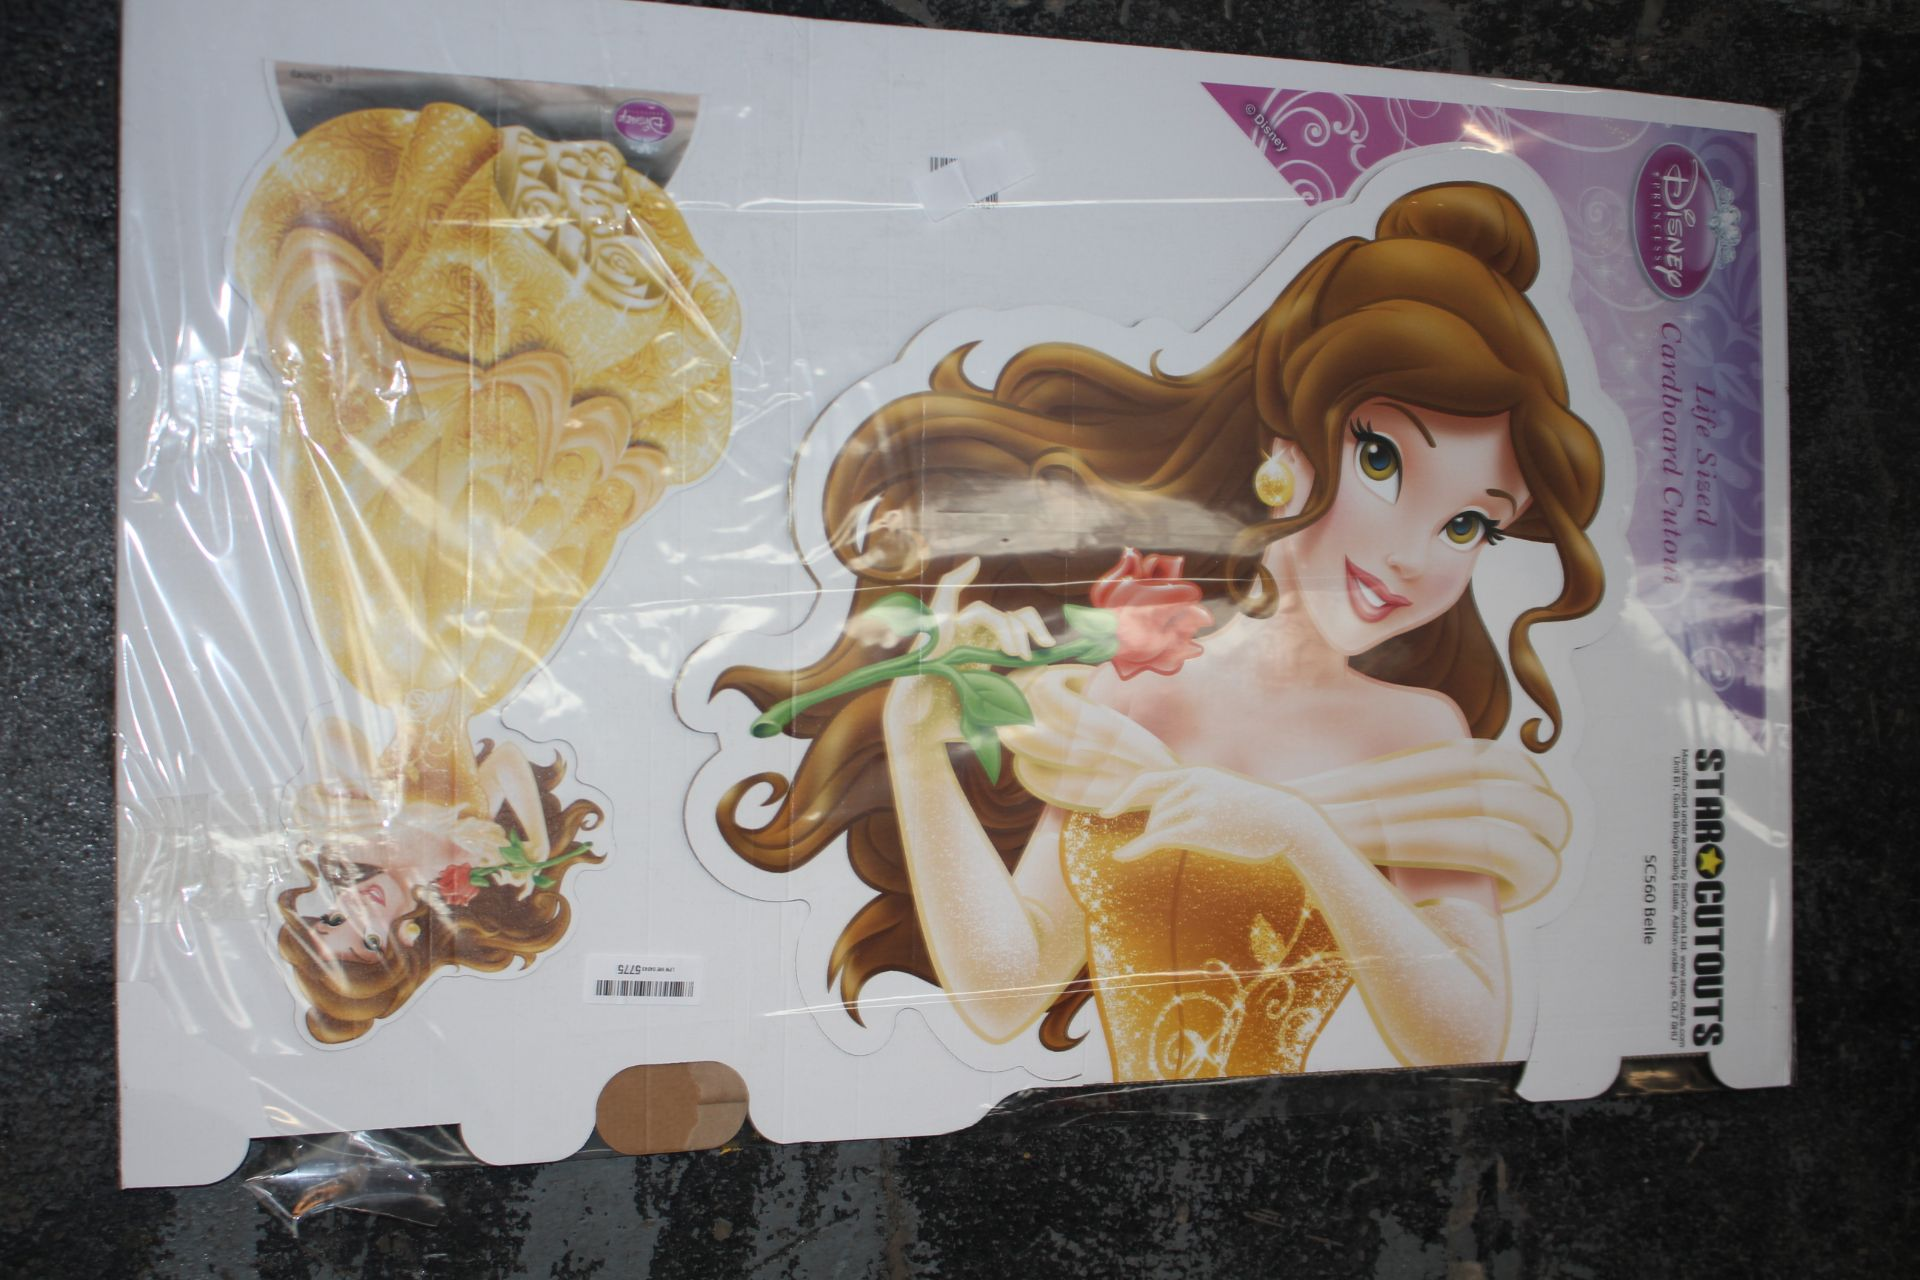 BAGGED DISNEY PRINCESS LIFESIZE STAR CUTOUTS Condition ReportAppraisal Available on Request- All